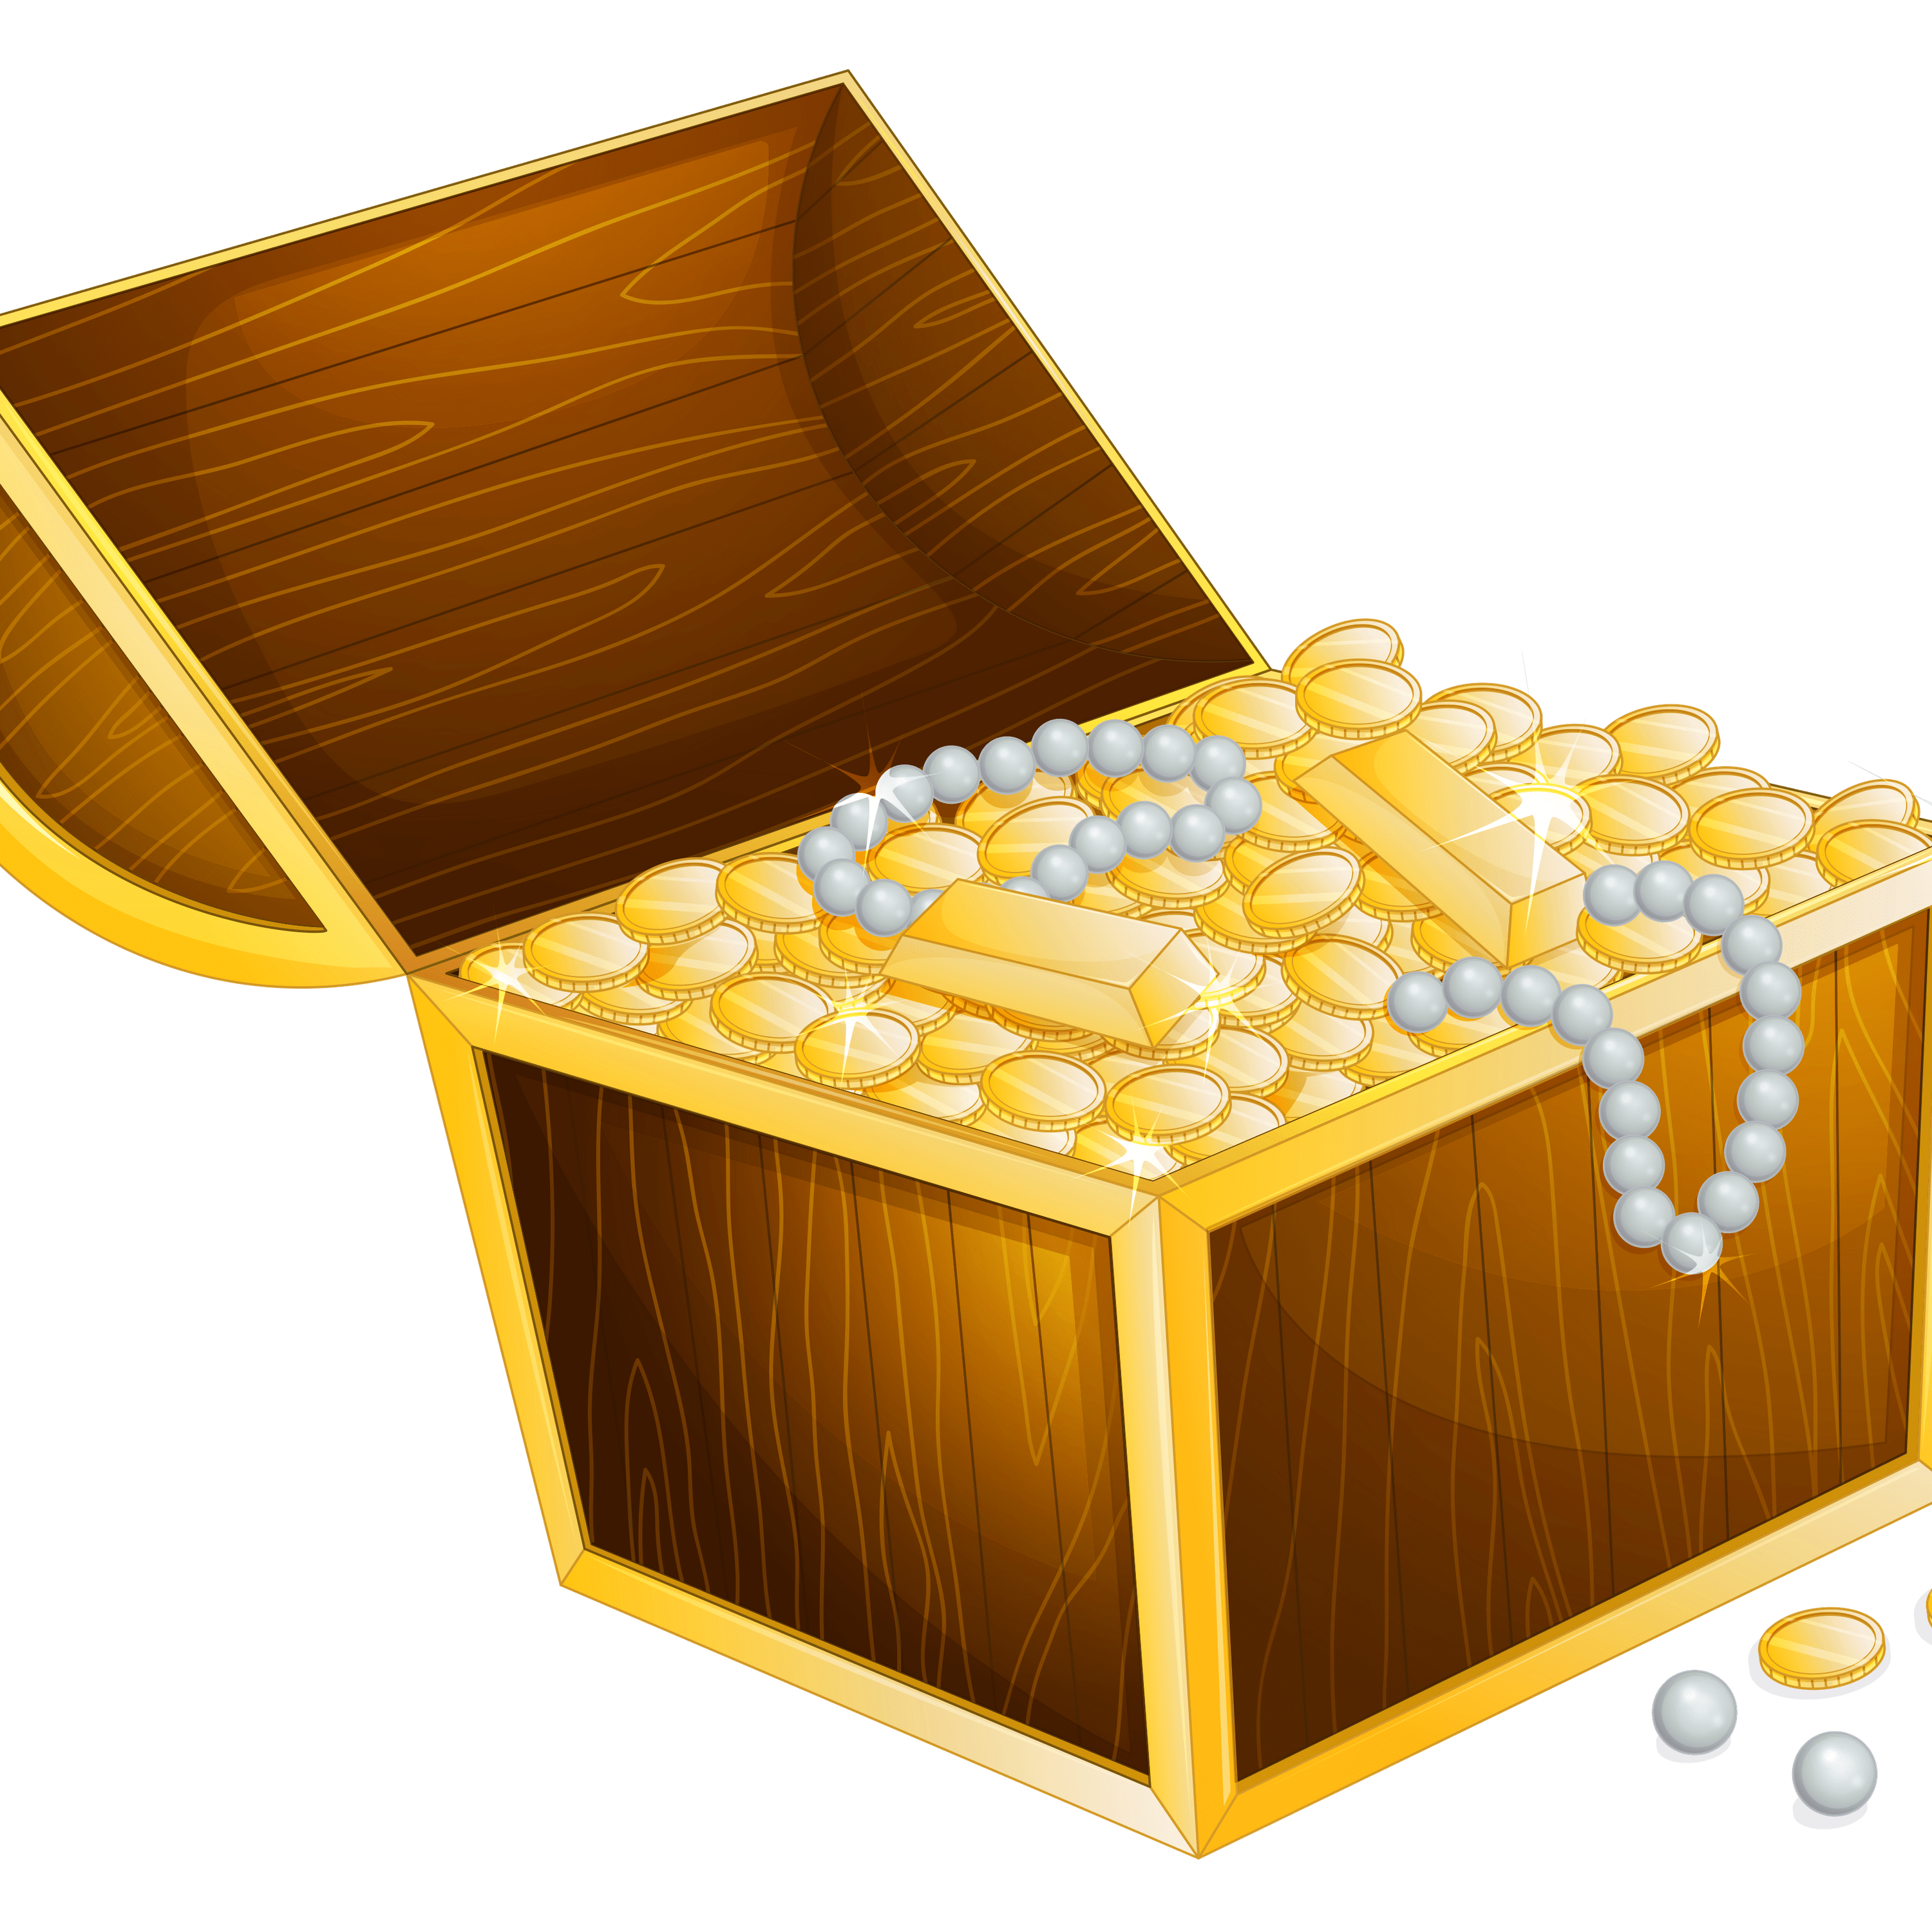 Treasure clipart transparent background. Png stickpng